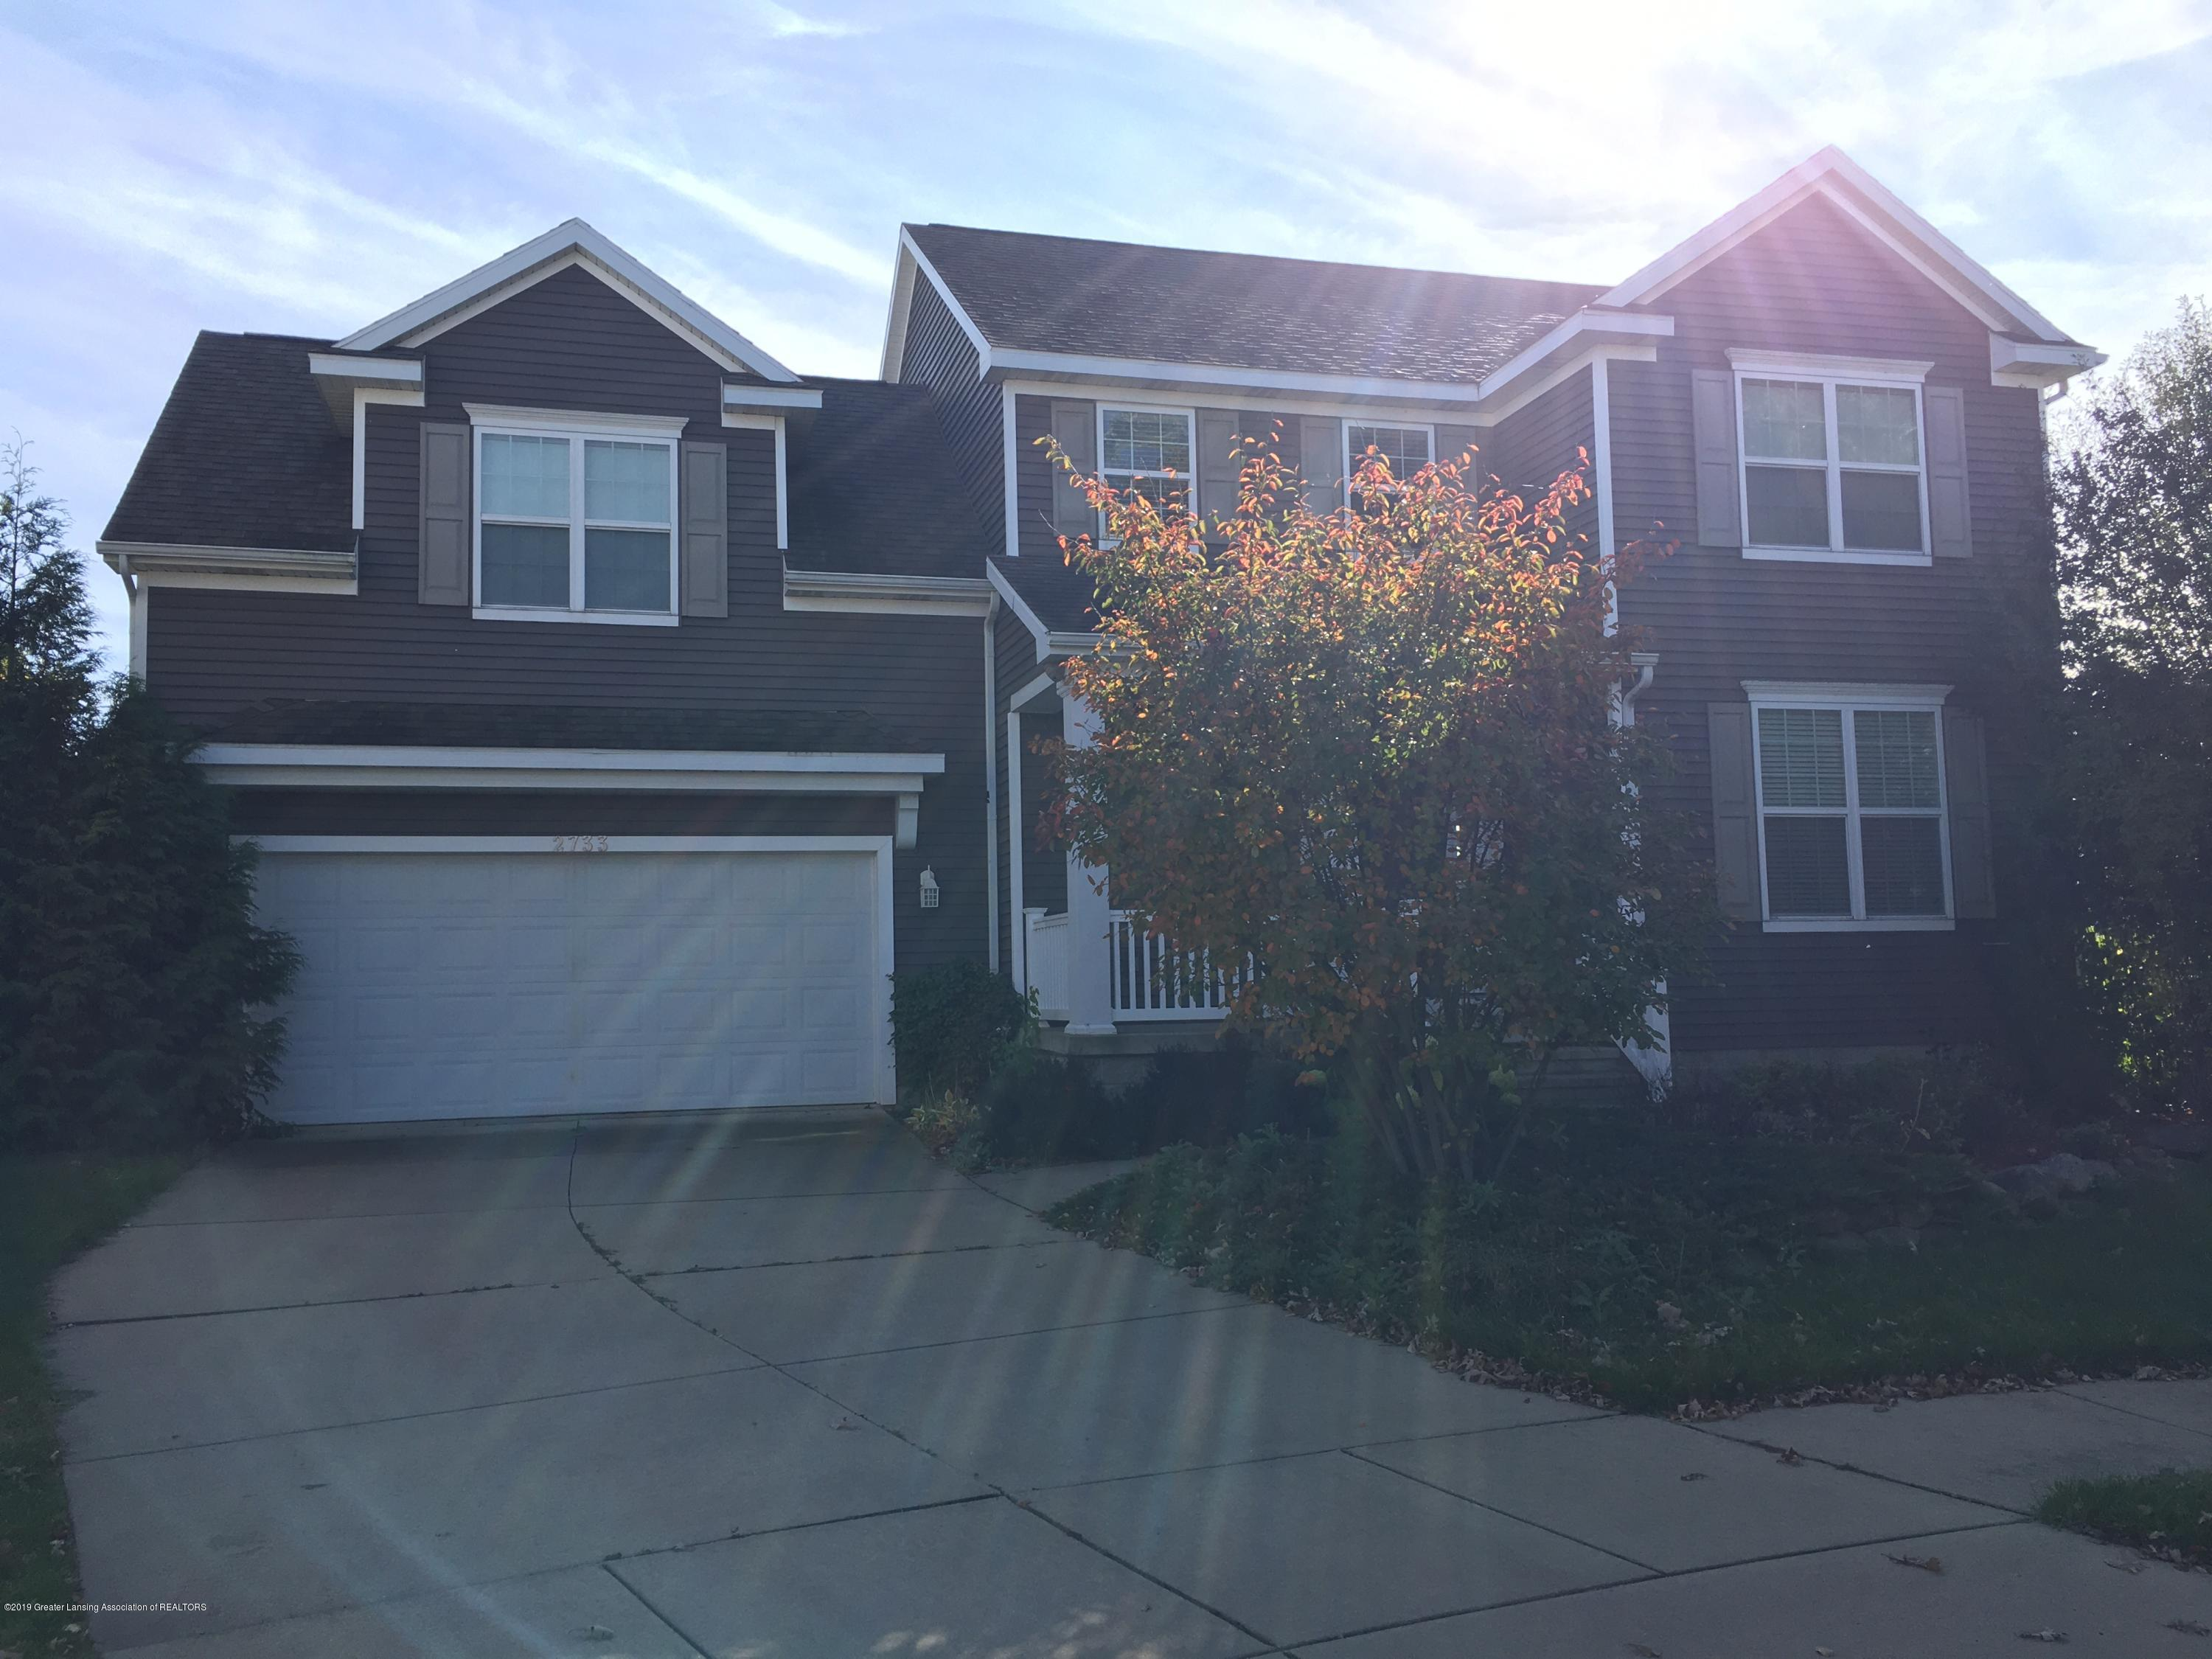 2733 Elderberry Dr - 2733 Elderberry - 1